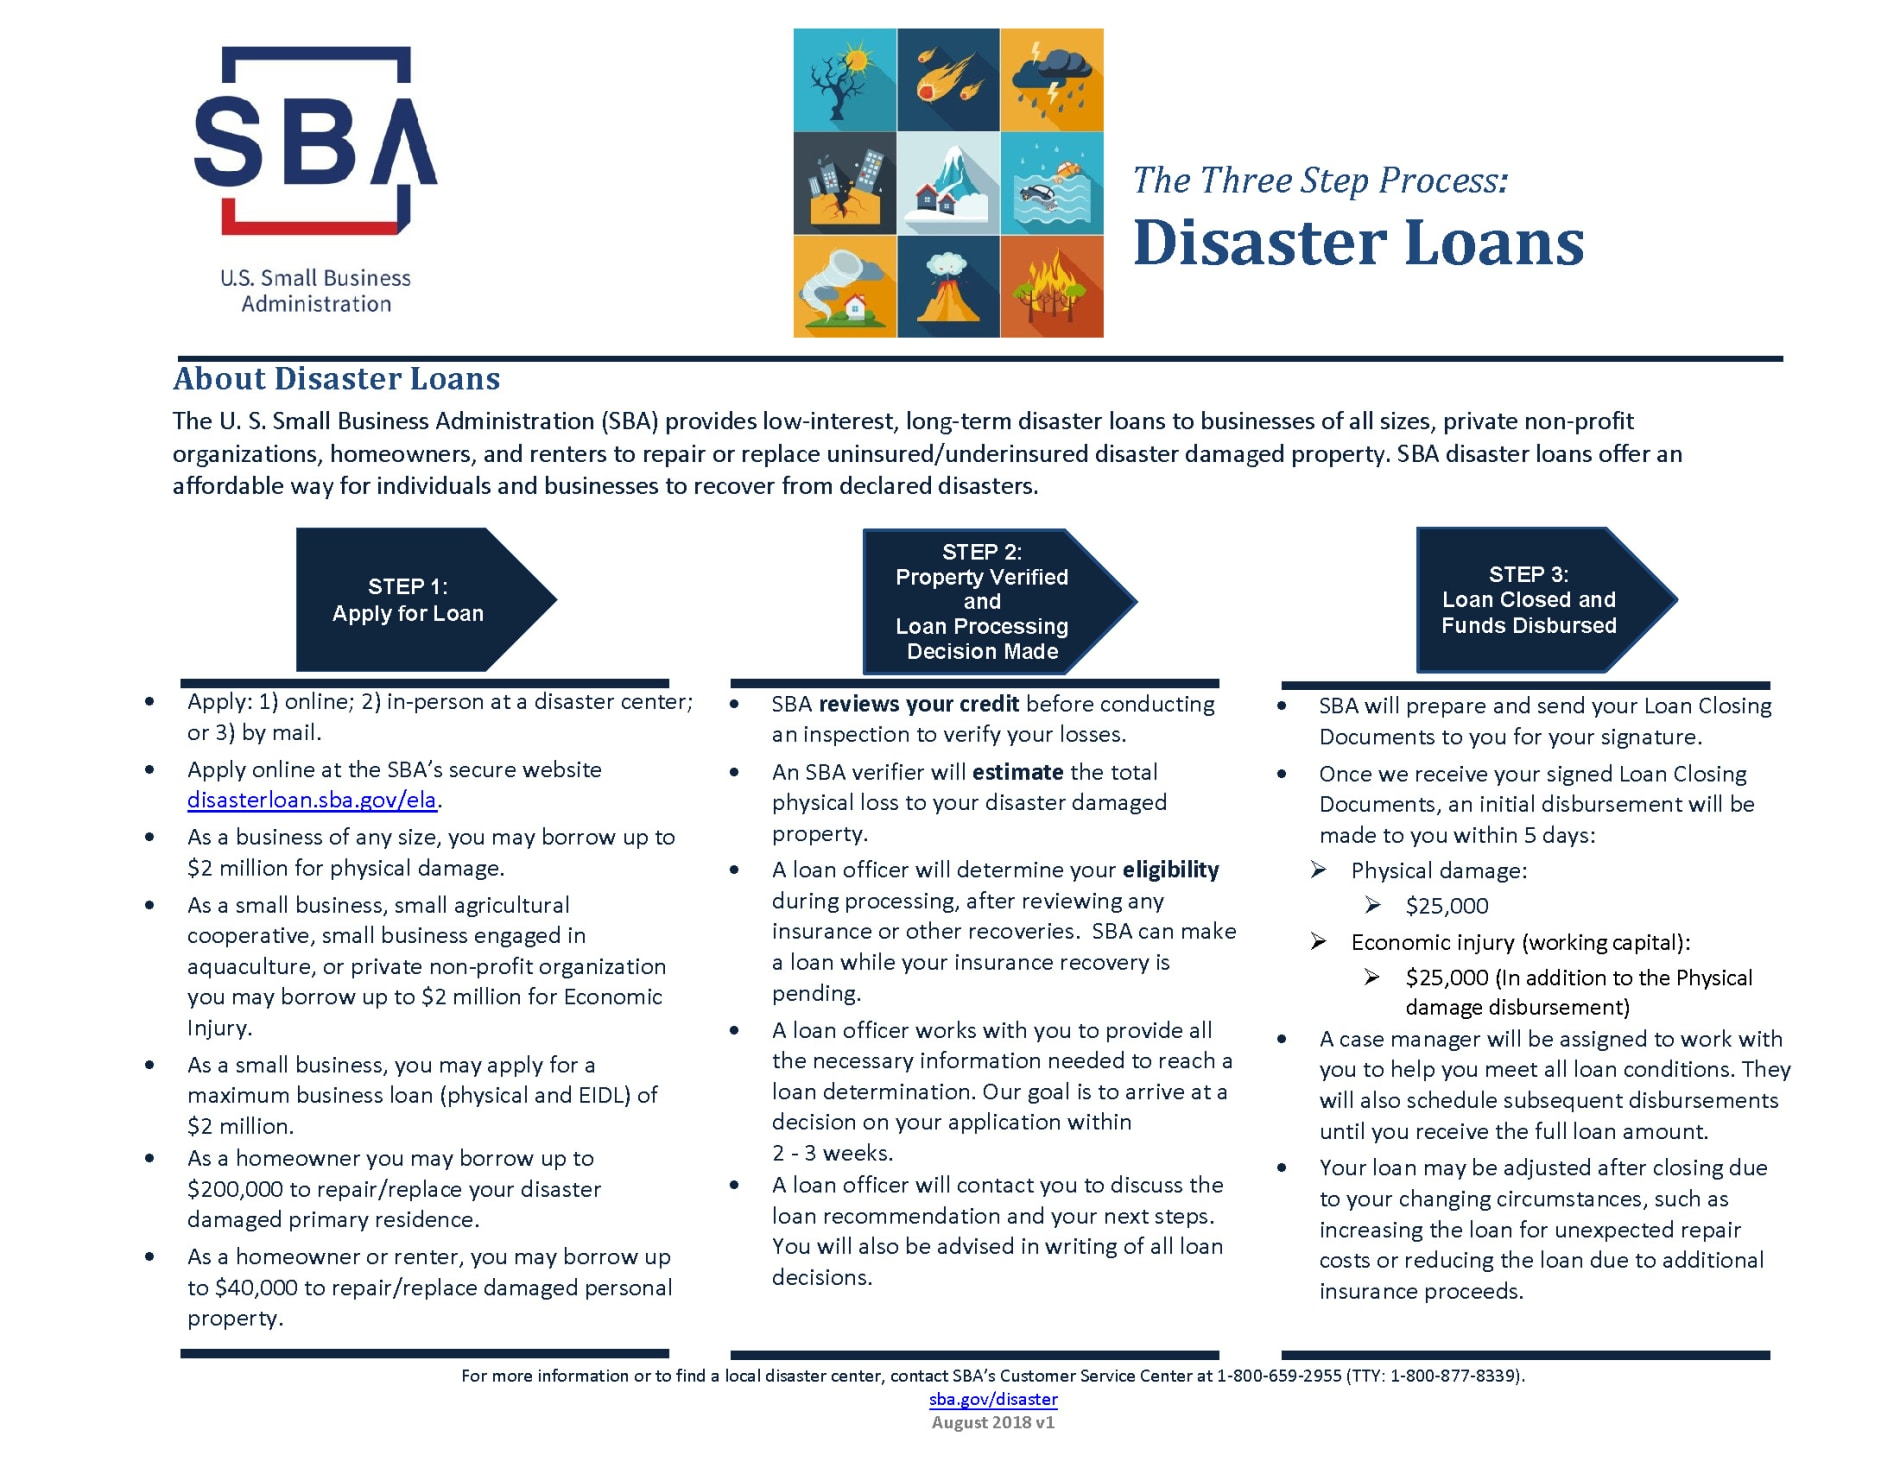 Disaster-Playbook-One-Pager-8.1.18-logo-V1_Page_1-w1900.jpg